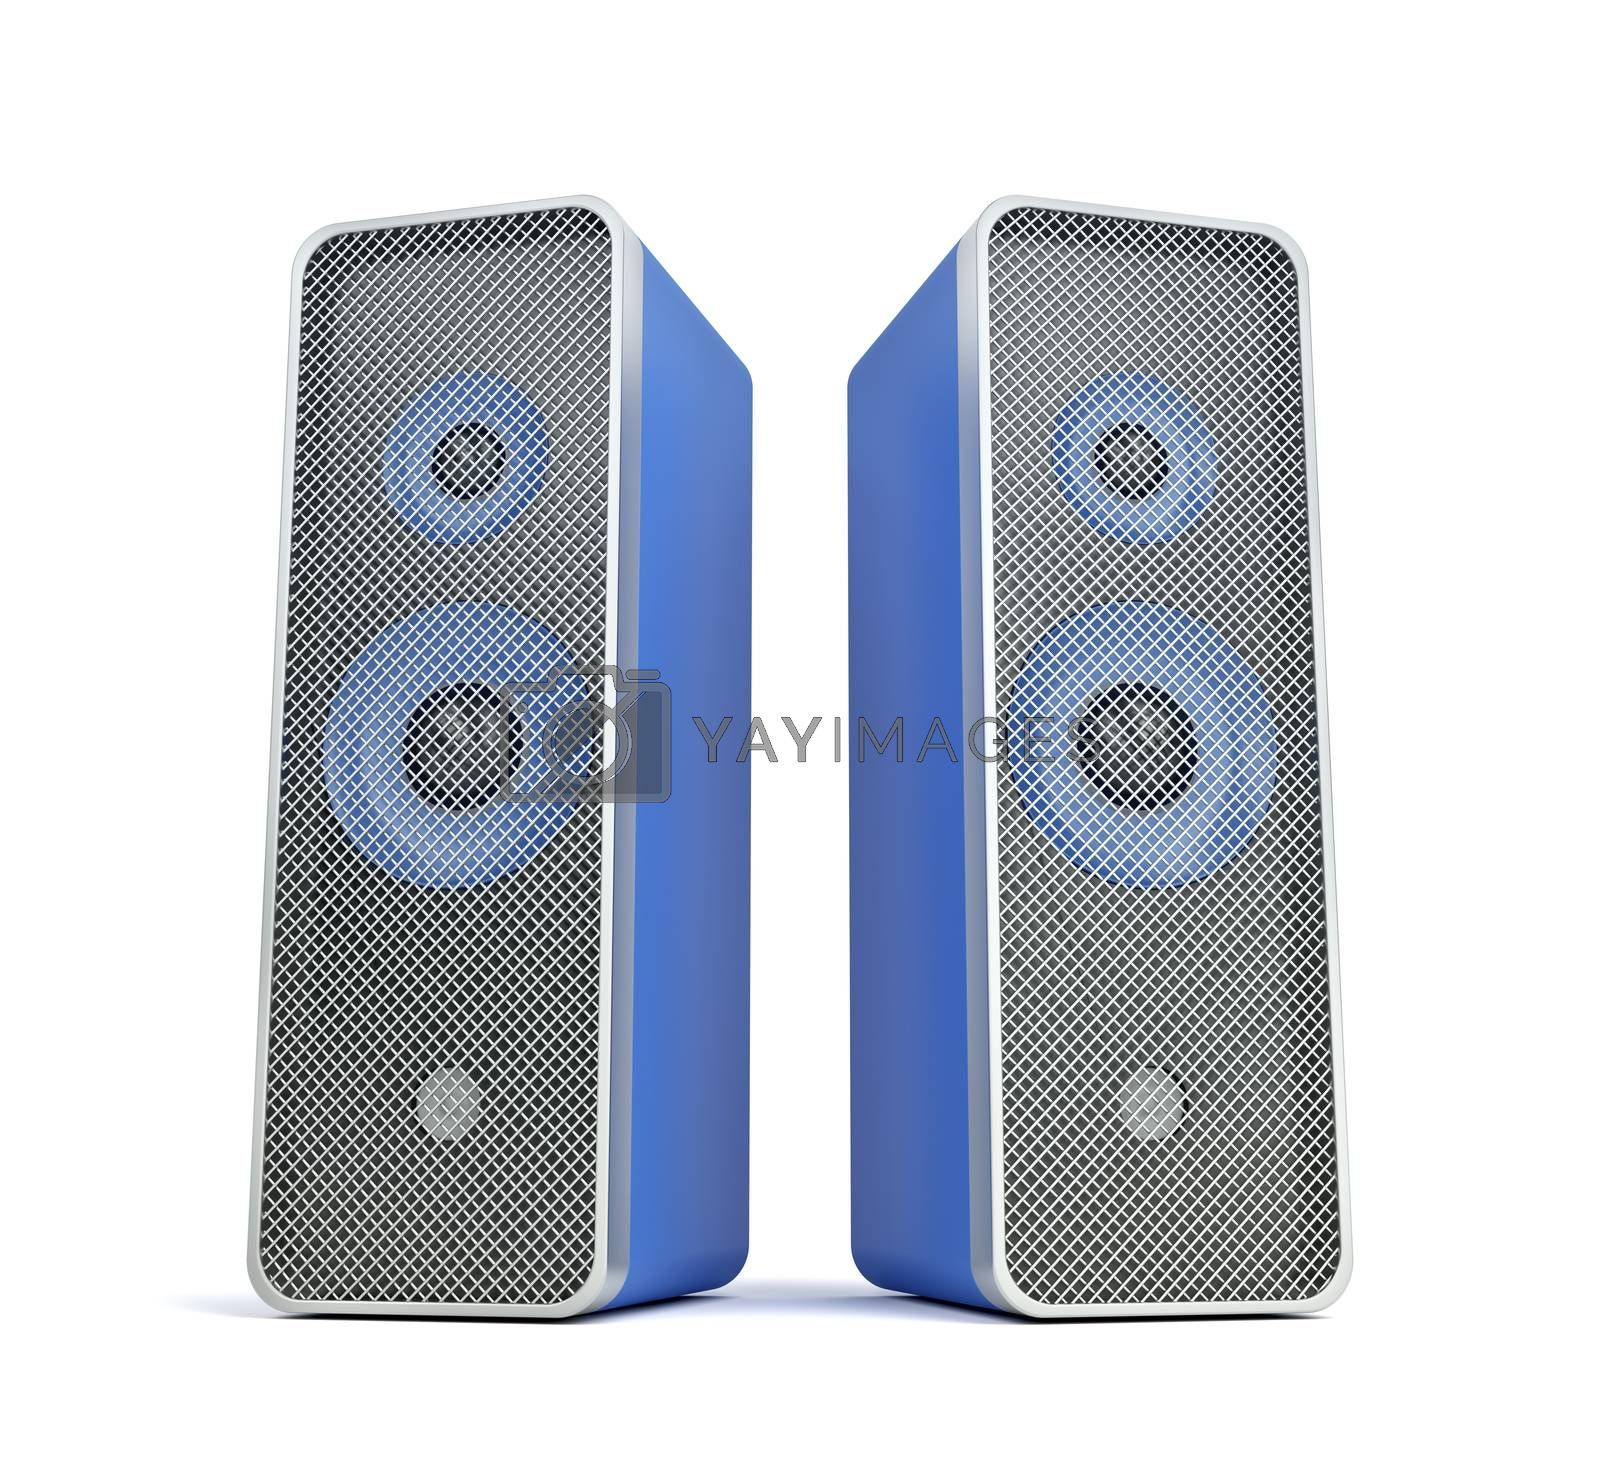 Stereo computer speakers on white background